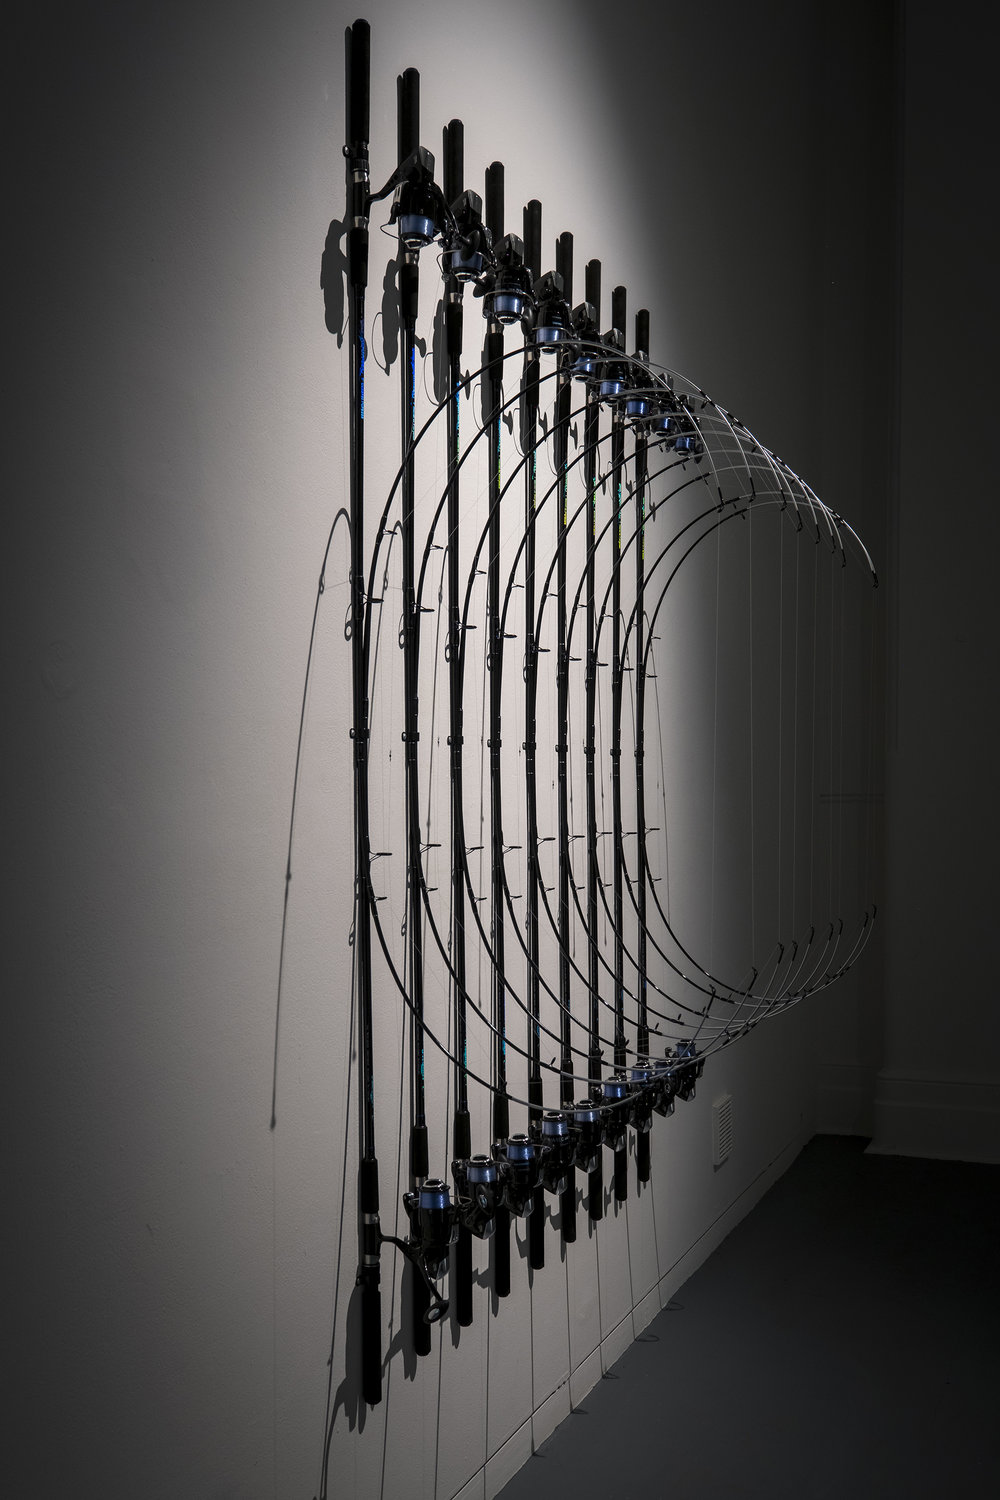 In-tension , 2016, fishing rods and line, 210 x 160 x 80 cm. Exhibited at Hatched: National Graduate Show 2017, Perth Institute of Contemporary Arts. Image: Alessandro Bianchetti.